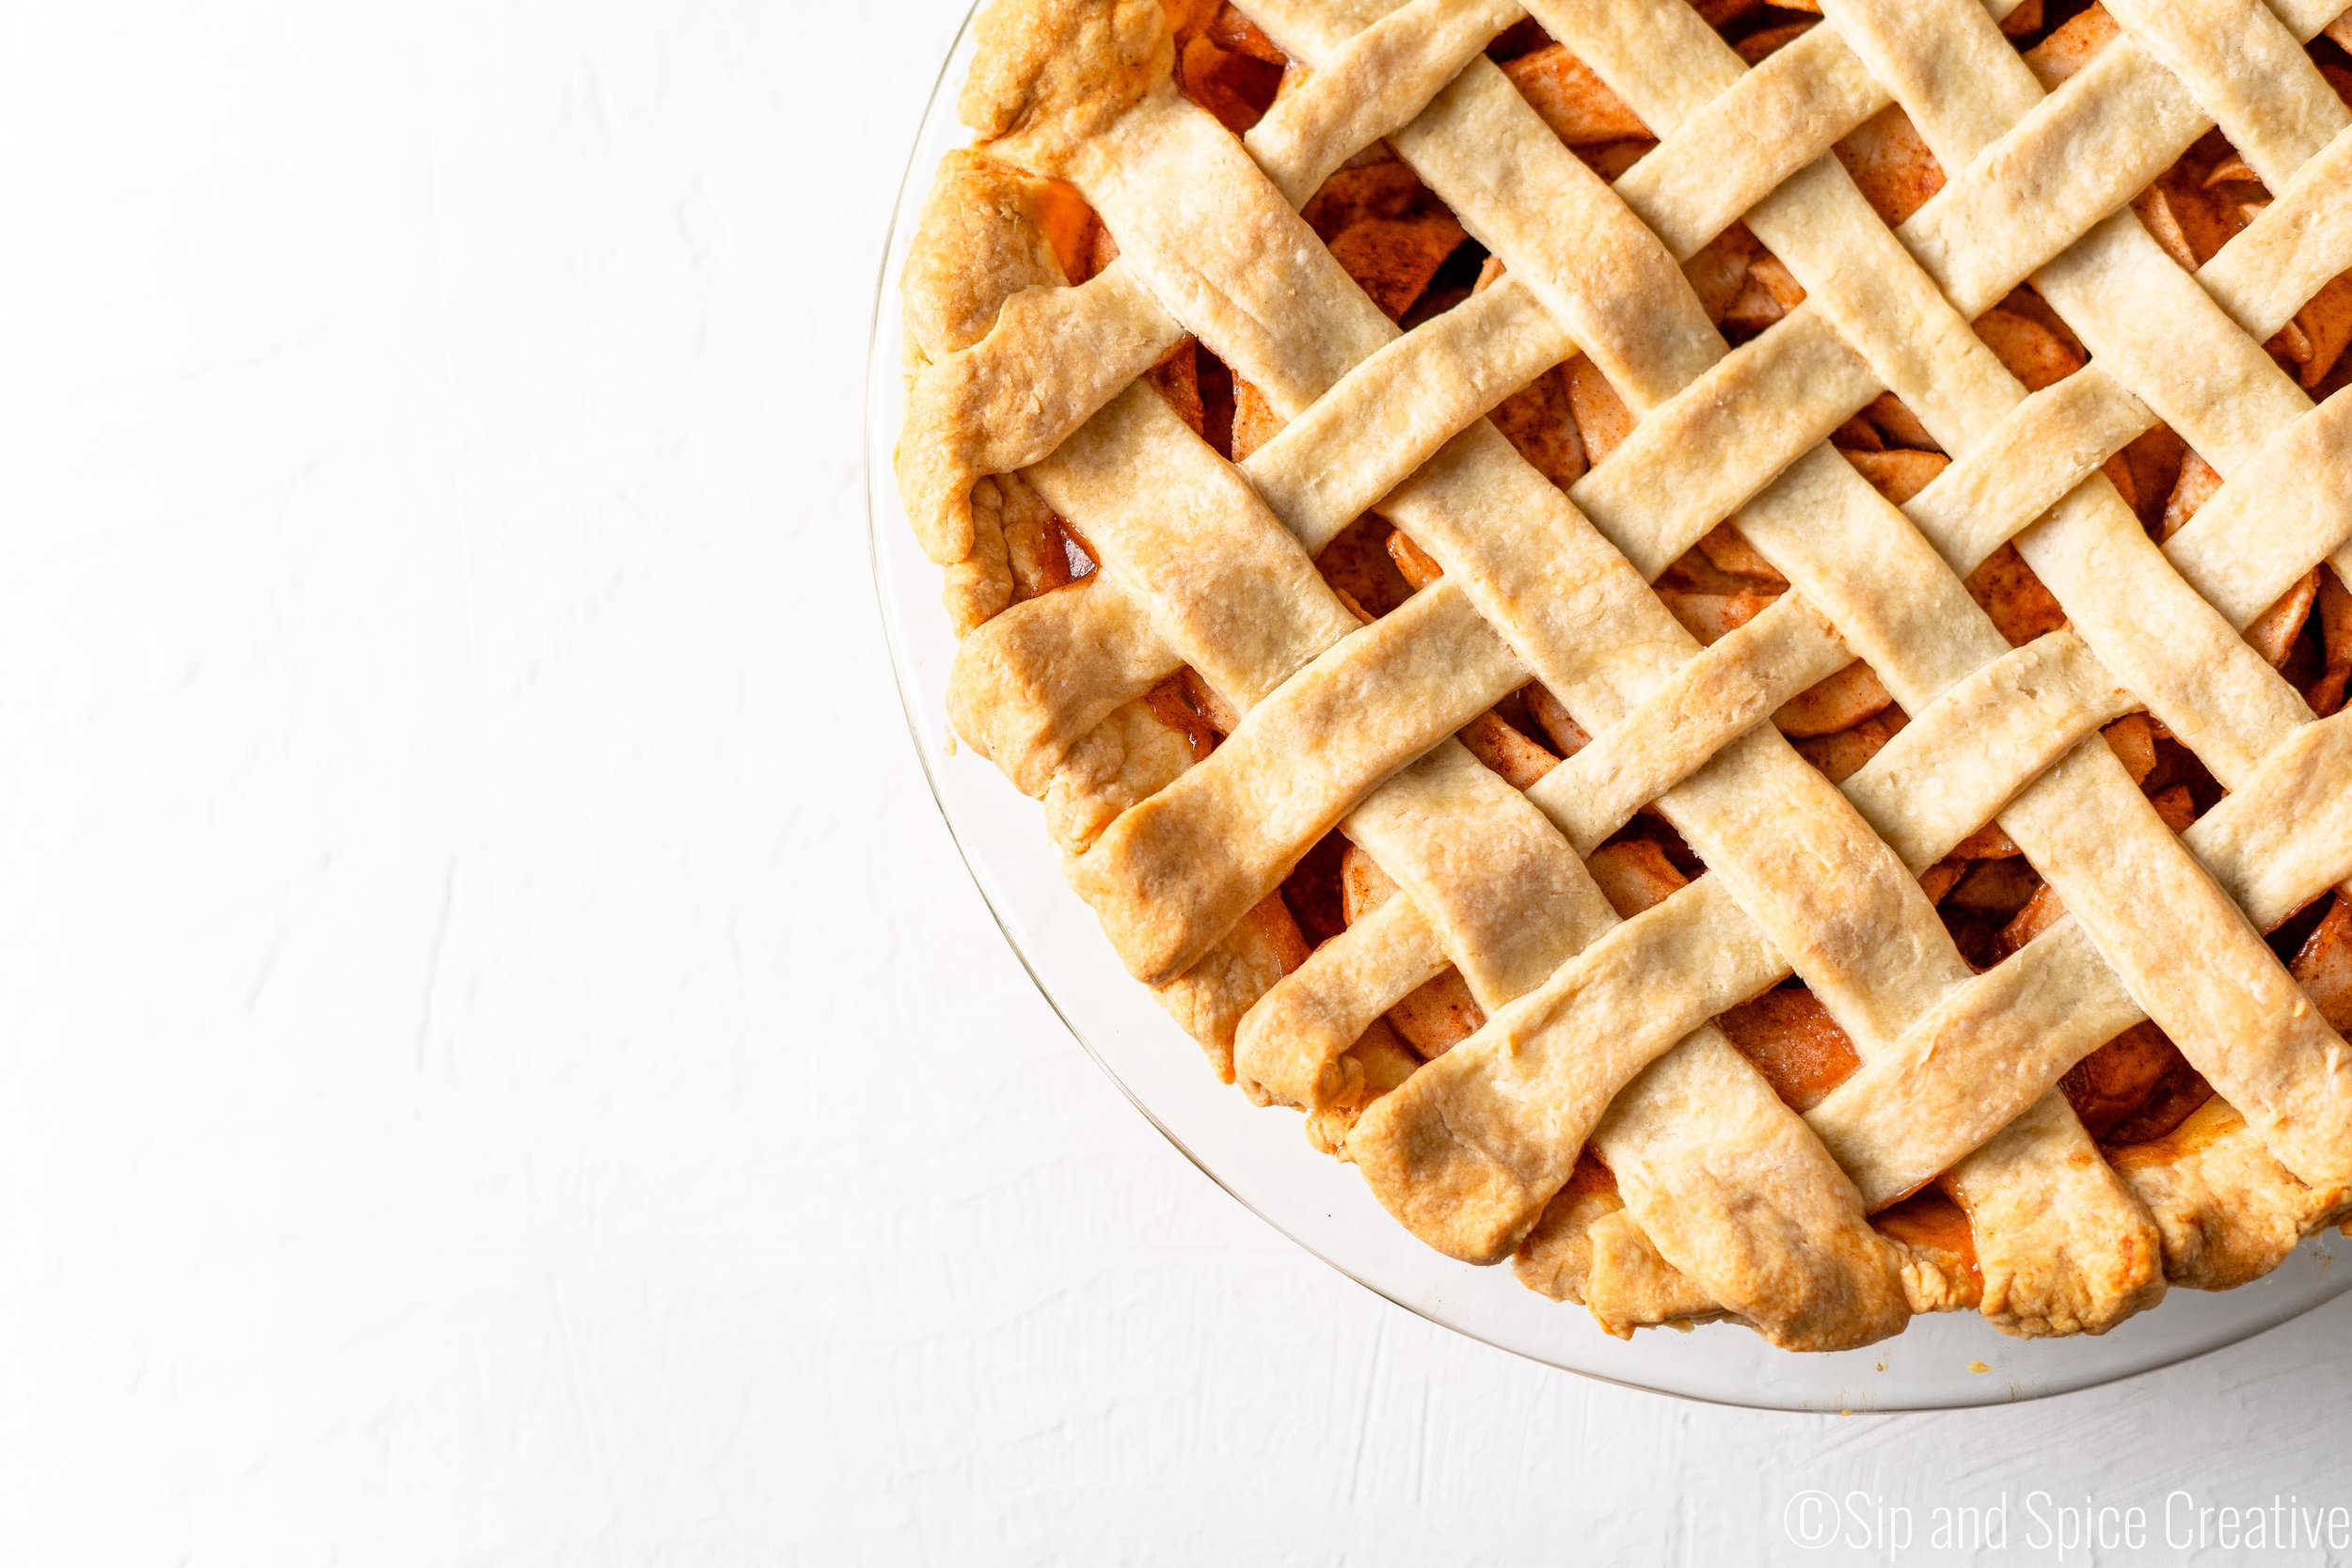 Classic Apple Pie  - Sip and Spice Creative 3.jpg